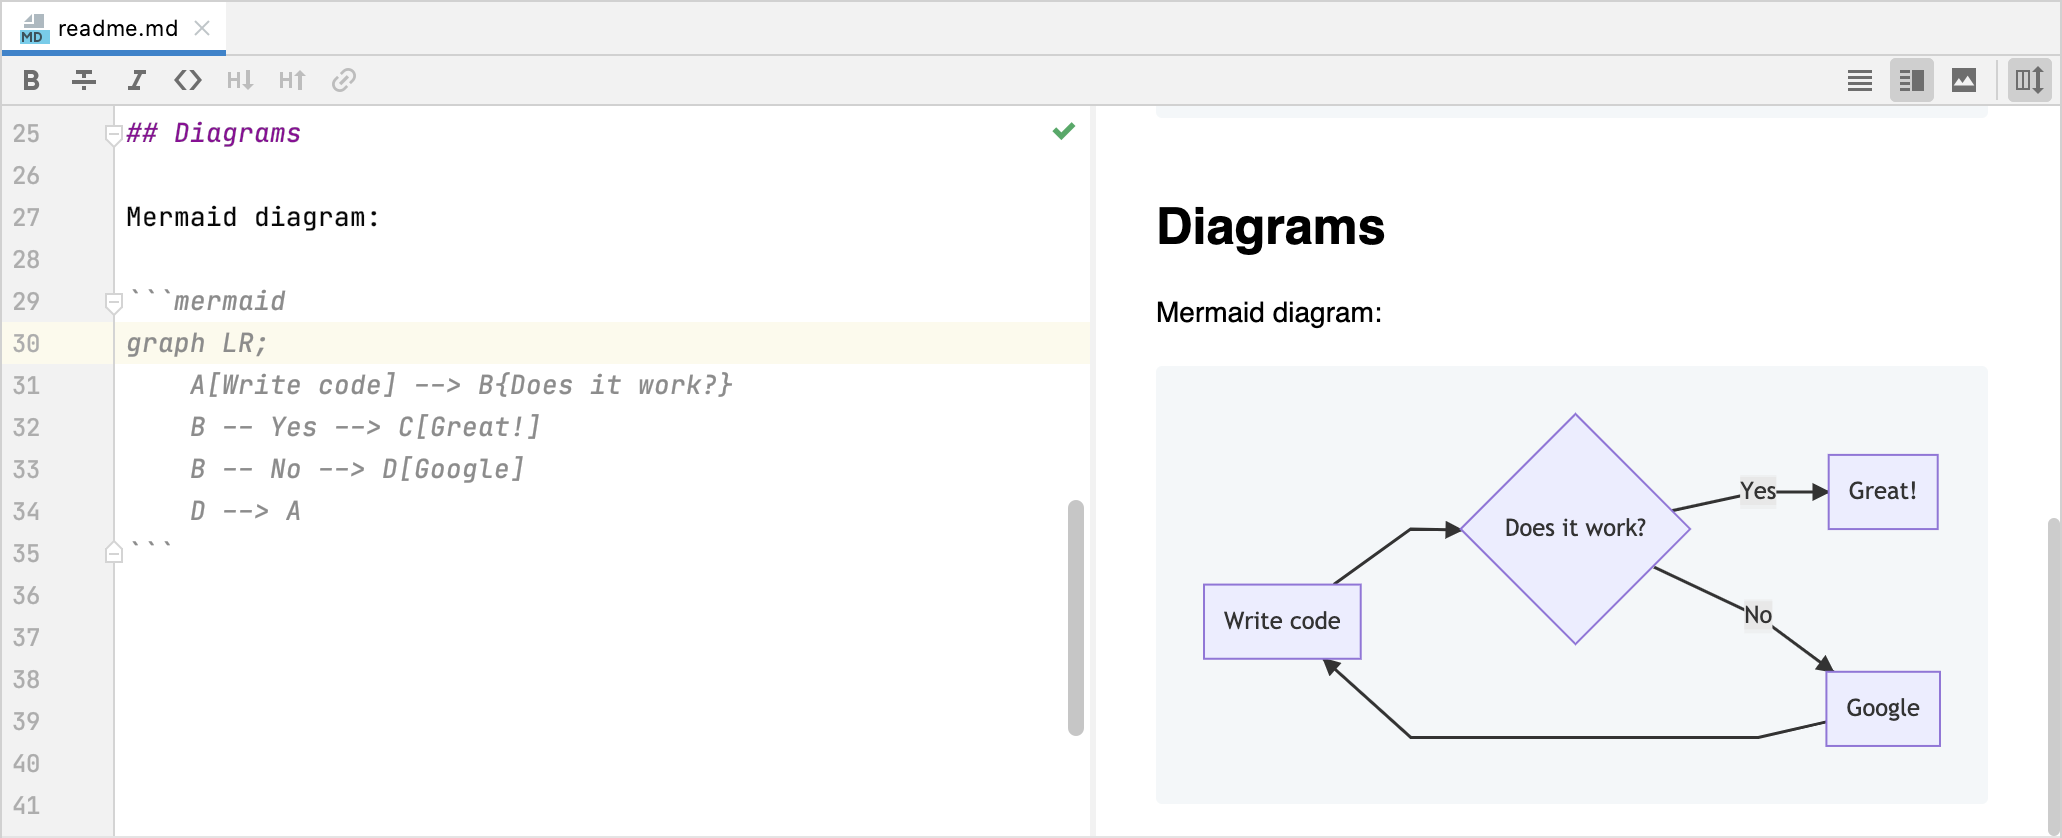 Mermaid diagram in Markdown